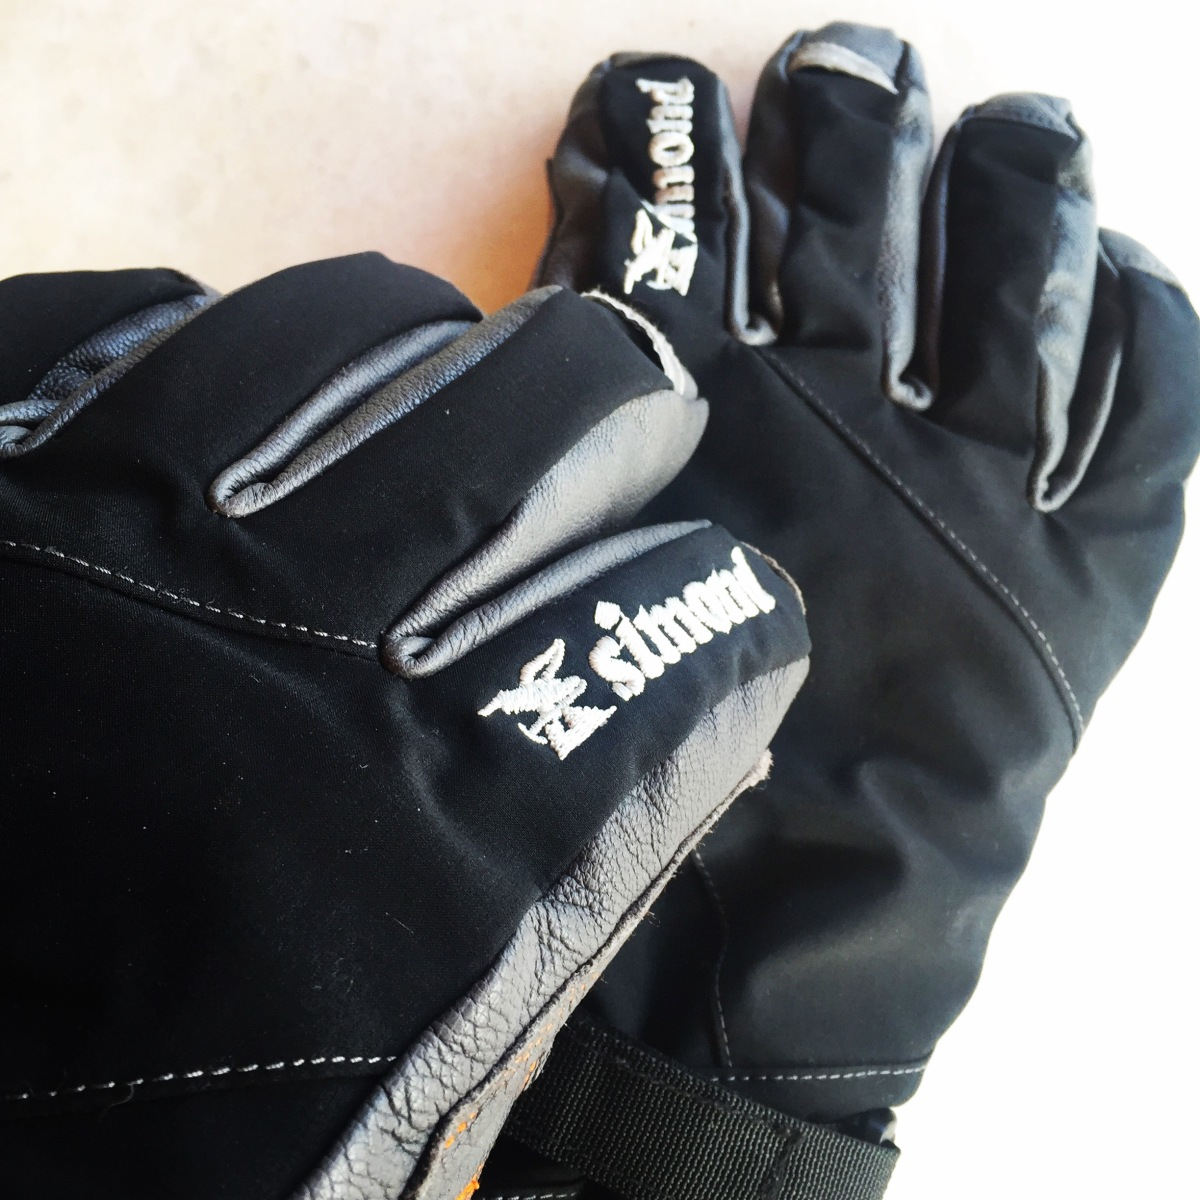 Simond 2-in-1 Mountaineering Gloves Review